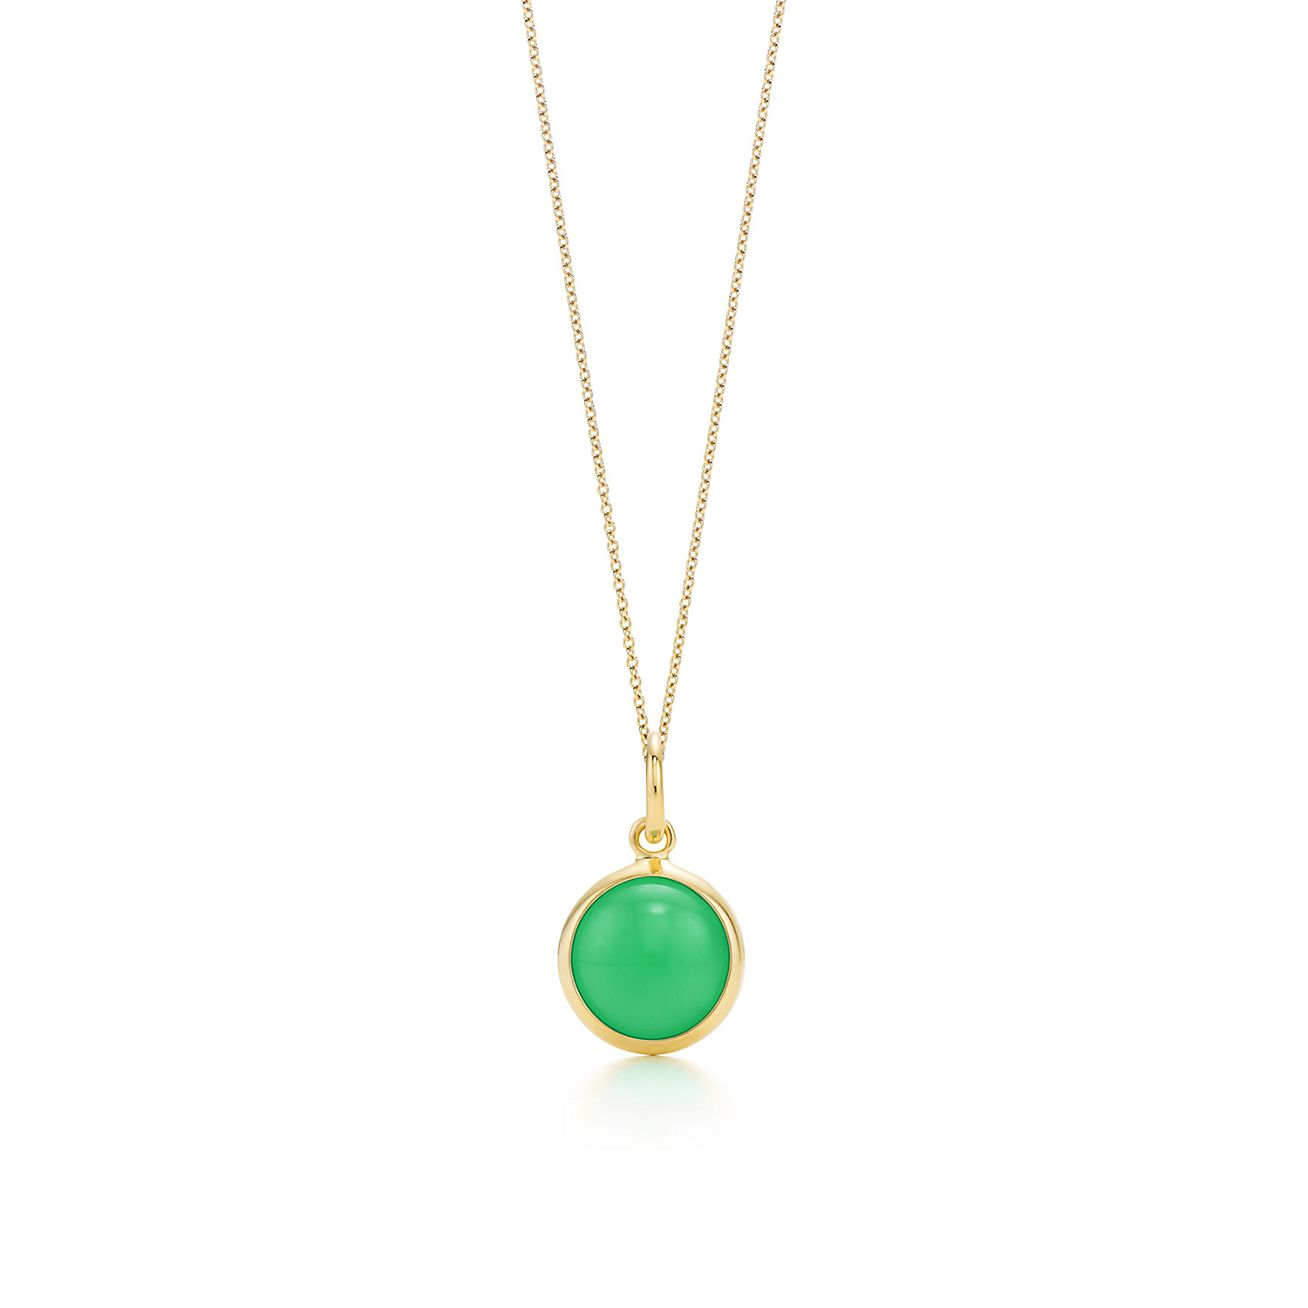 pendant debs fbrt diamonds products chrysoprase with letternoon khk necklace shop christina